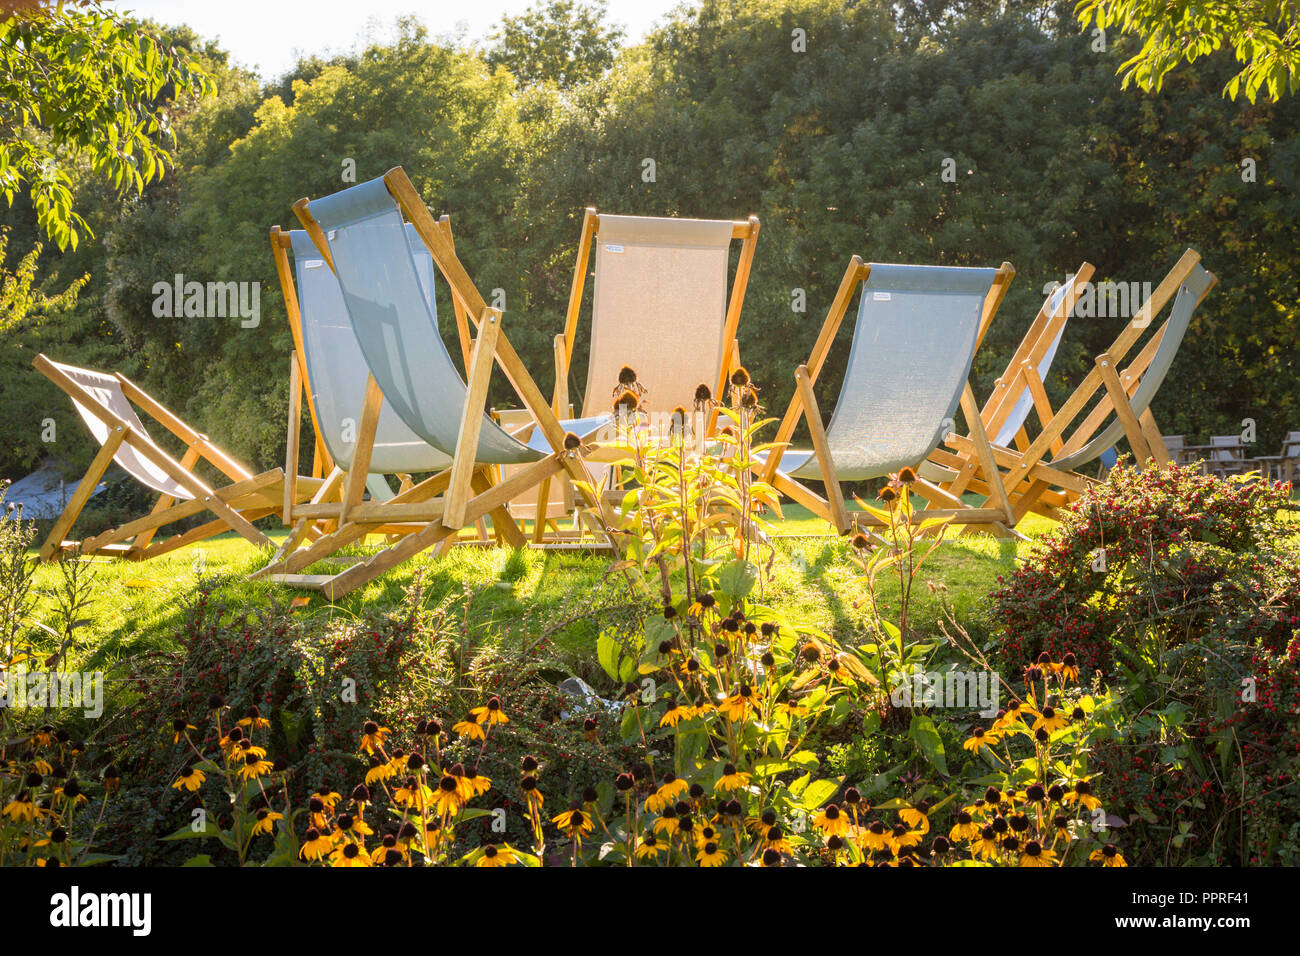 Eight empty deck chairs in a circle in warm sunshine UK - Stock Image